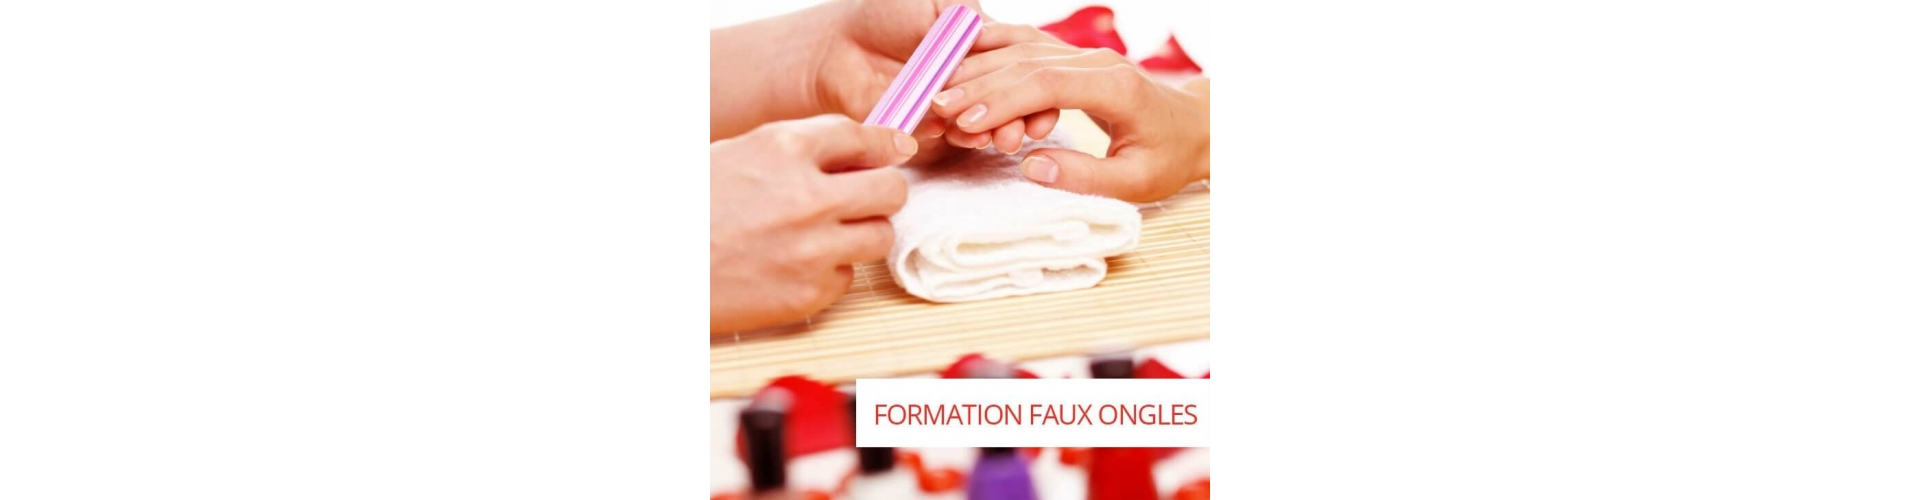 Nails trainings: fake nails in gel and acrylic in Belgium